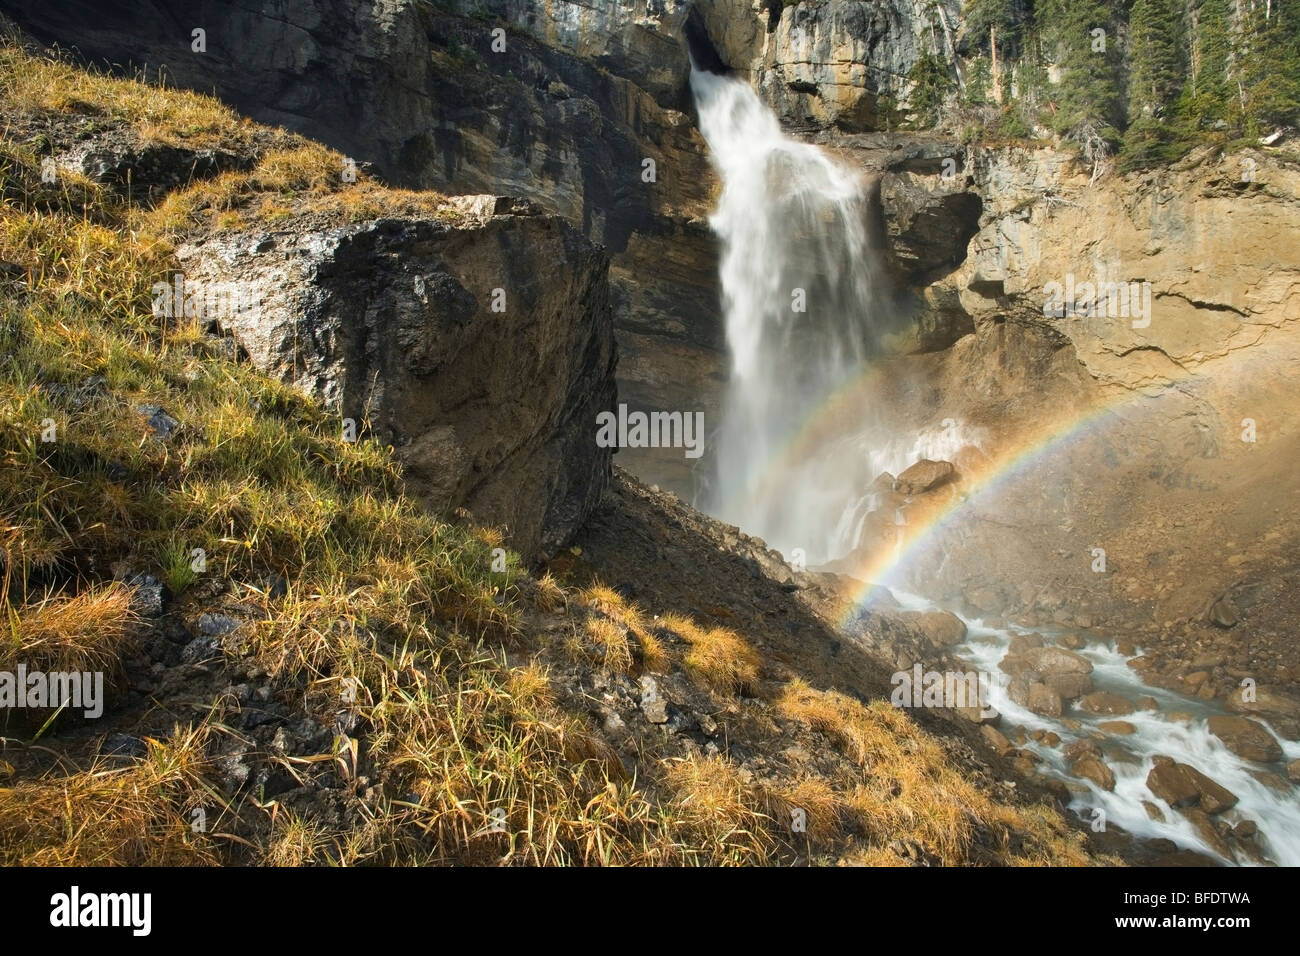 Rainbow in the mist, Panther Falls, Banff National Park, Alberta, Canada - Stock Image